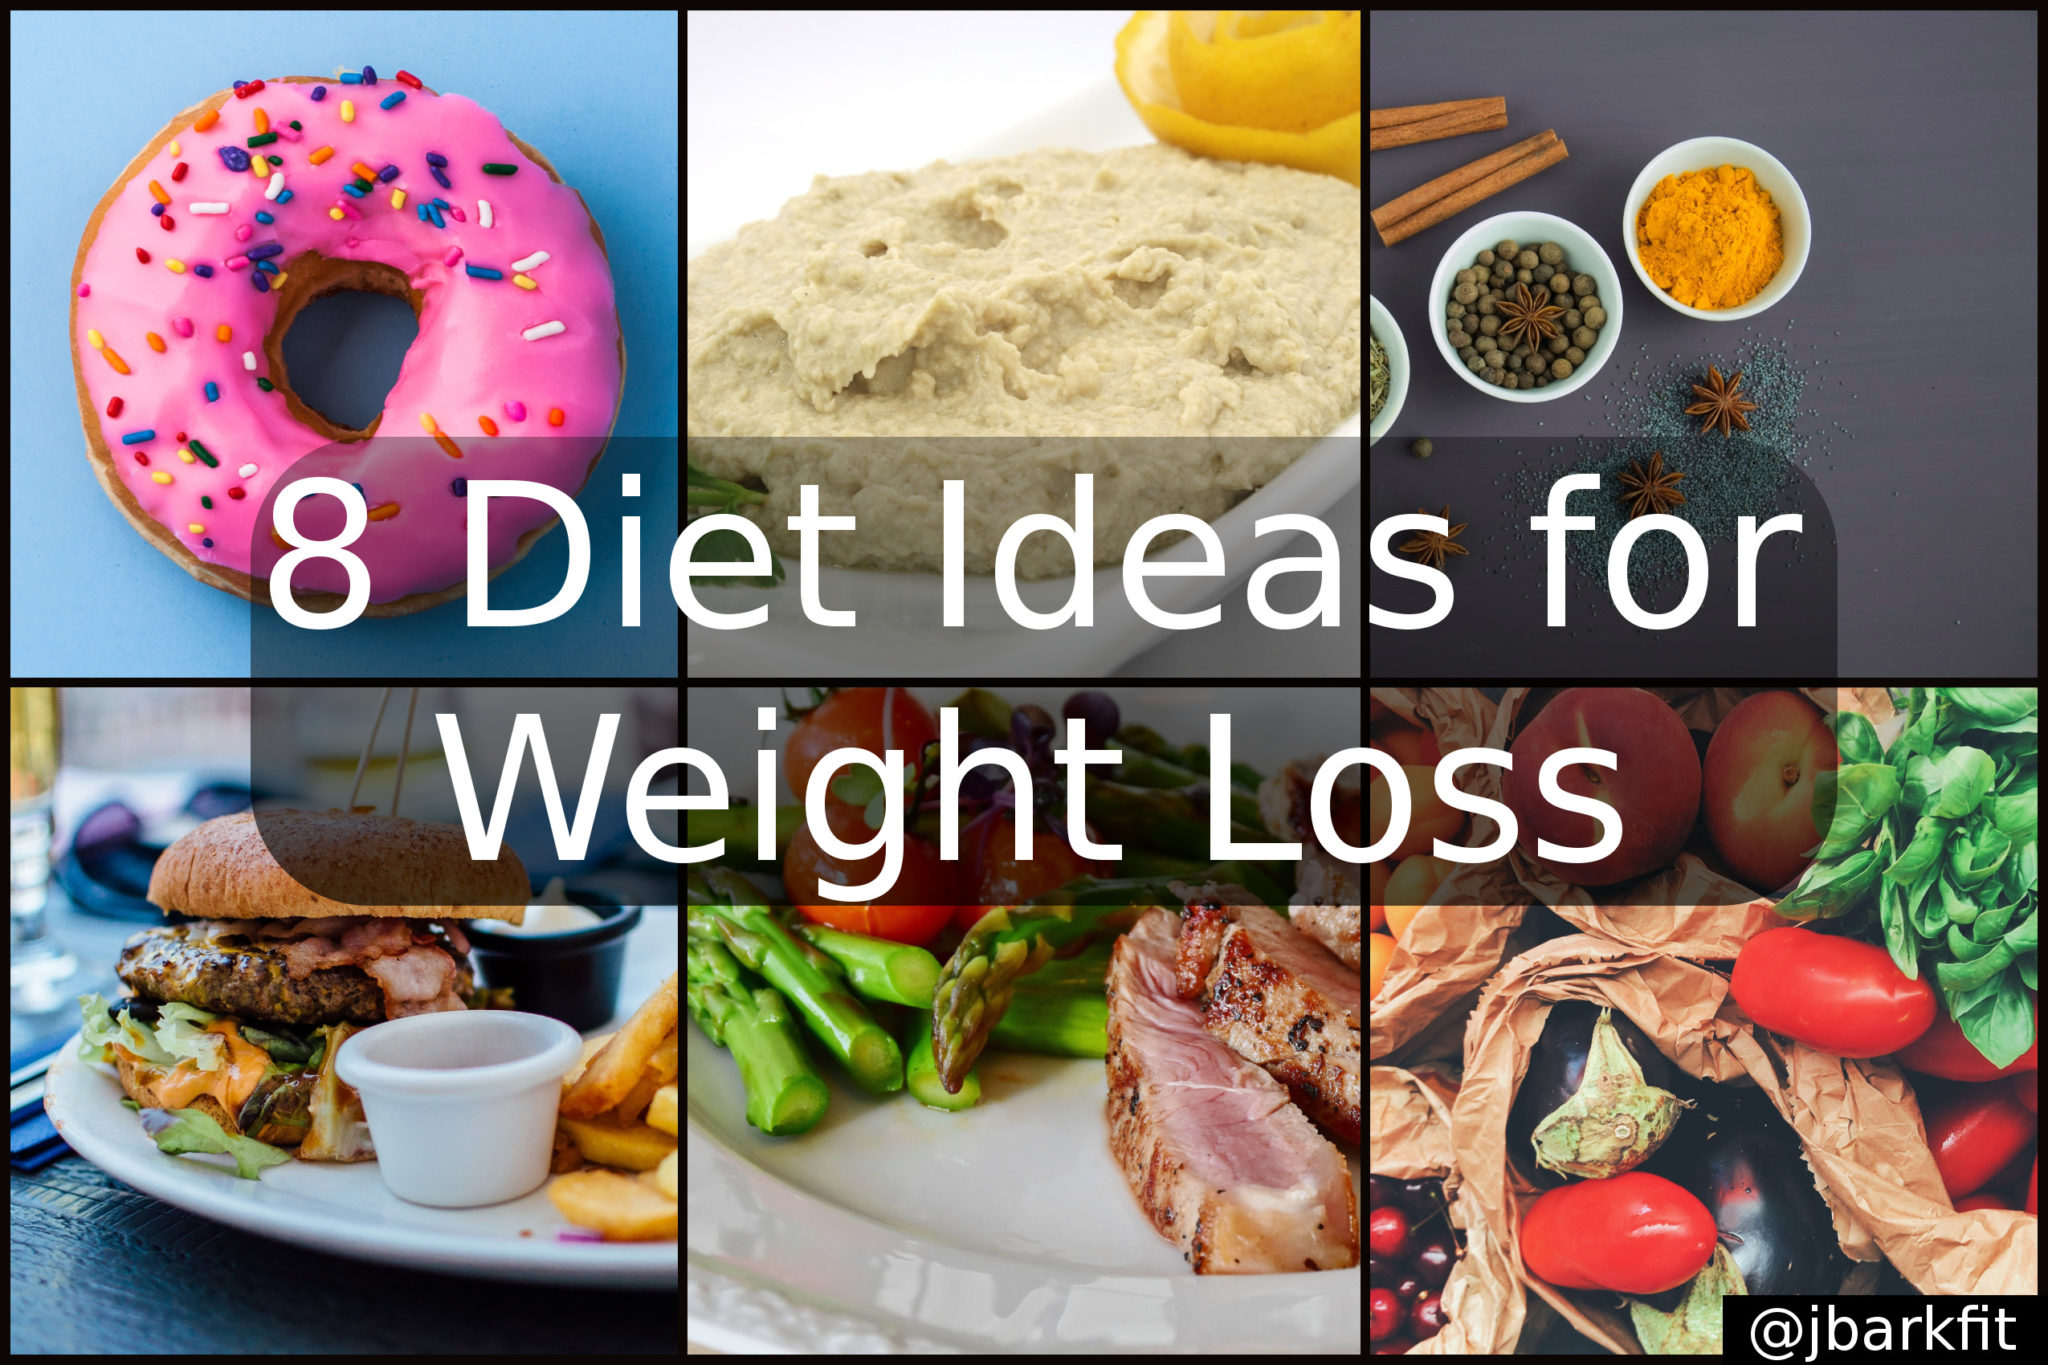 8-diet-ideas-for-weight-loss